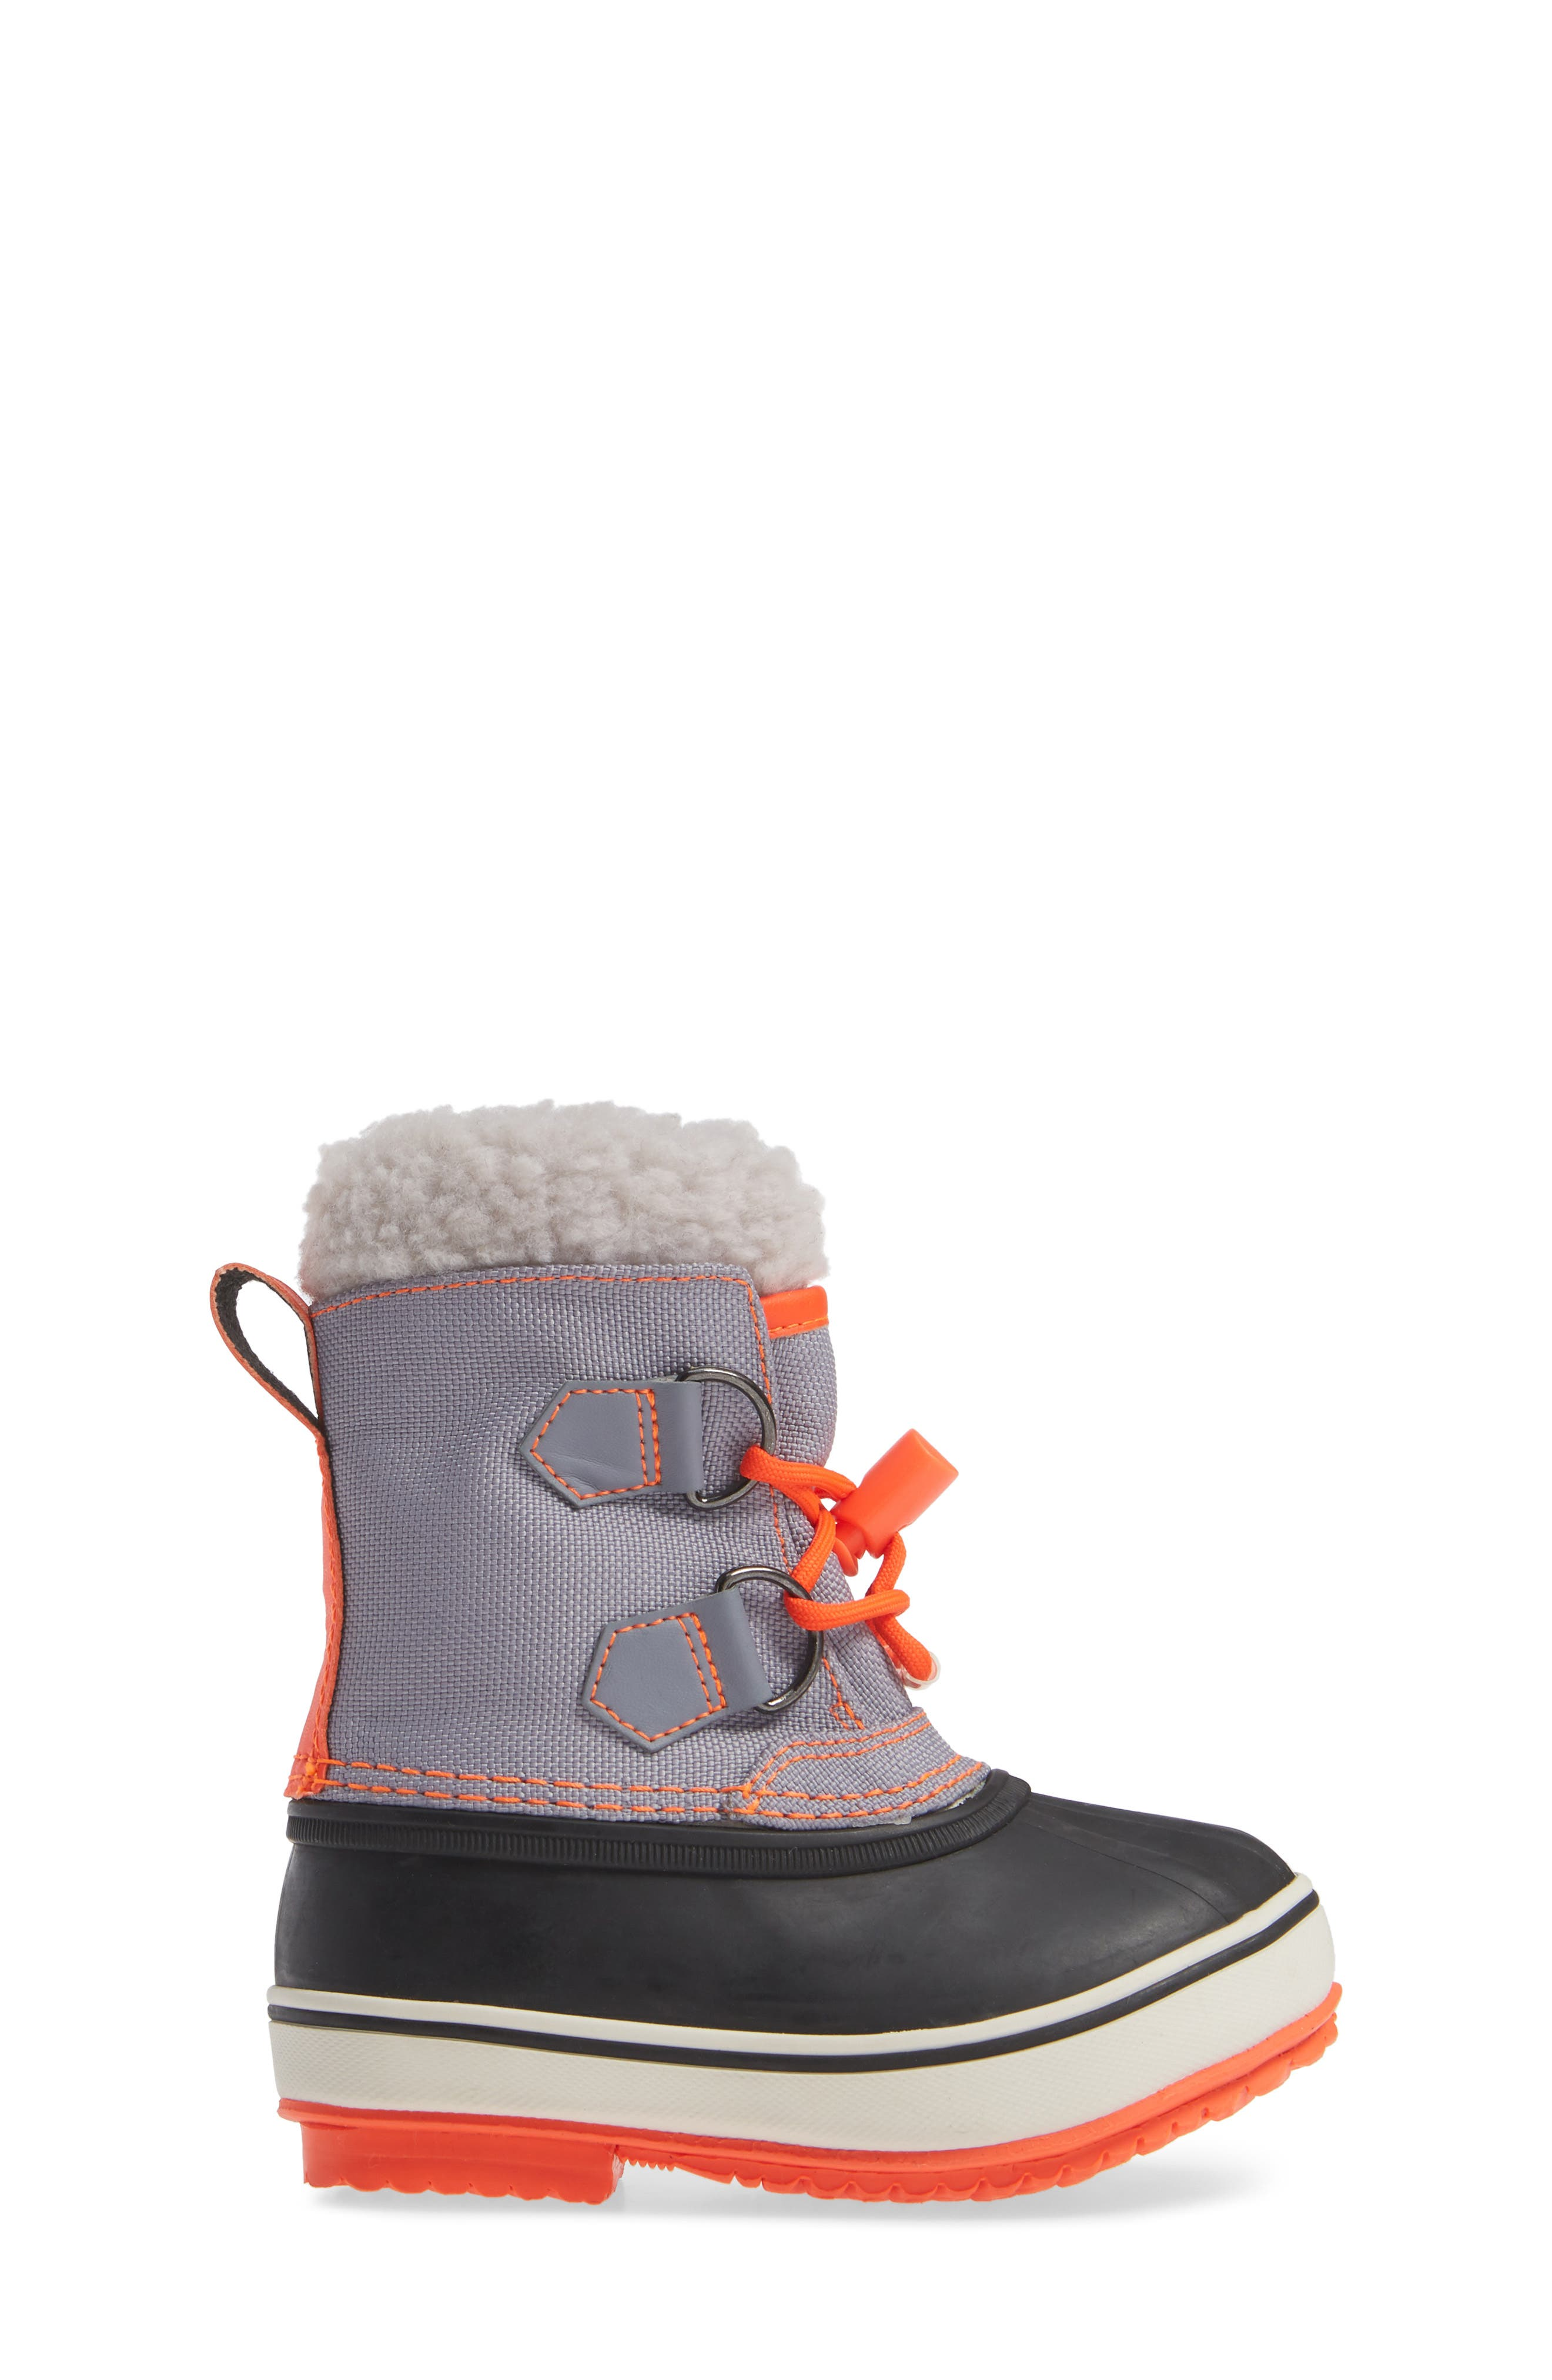 Waterproof Snow Boots,                             Alternate thumbnail 3, color,                             STARBOARD BLUE